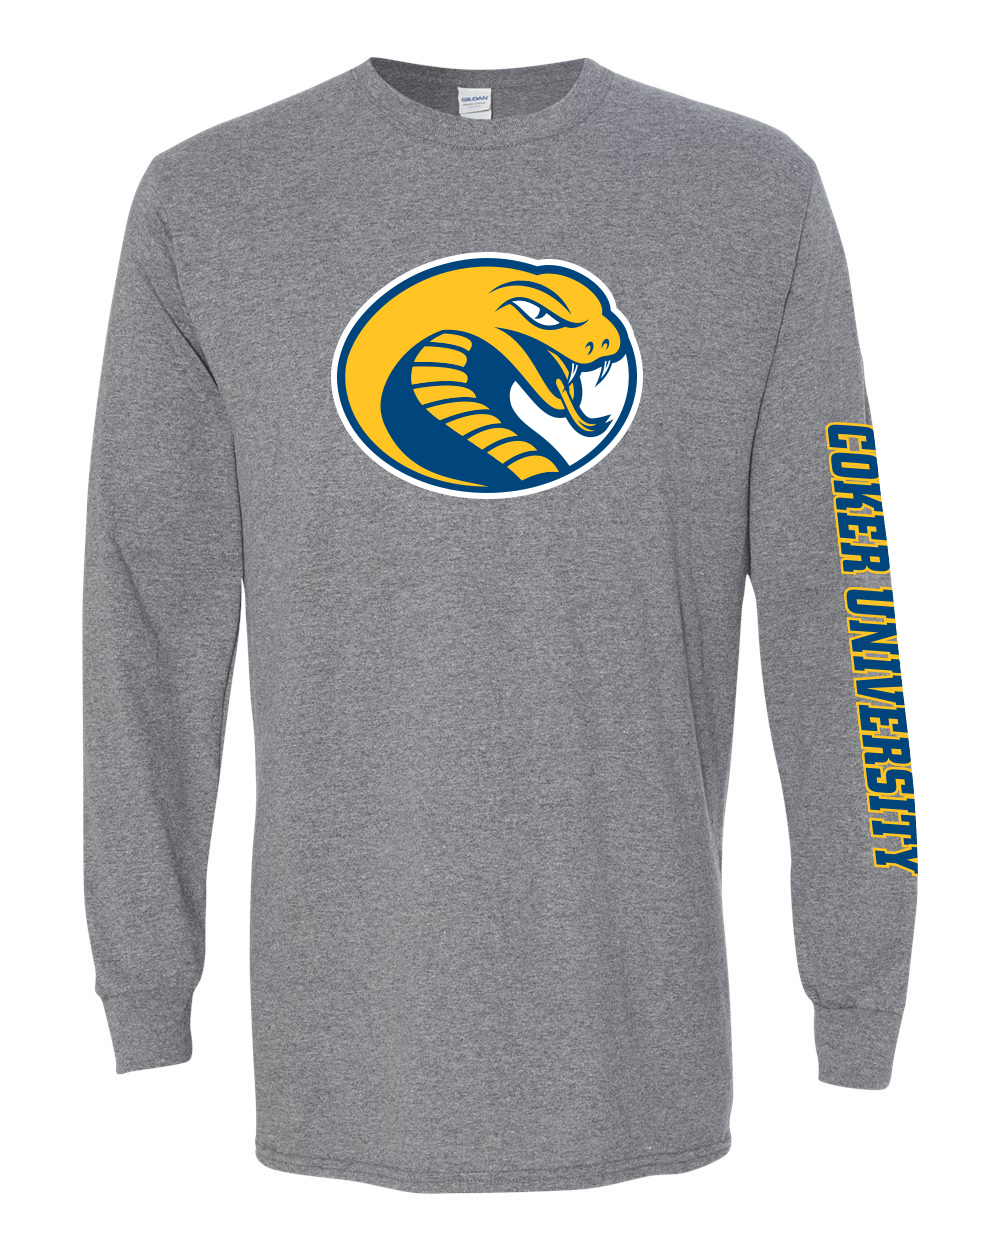 Image For Shirt Long Sleeve COBRA HEAD TEE